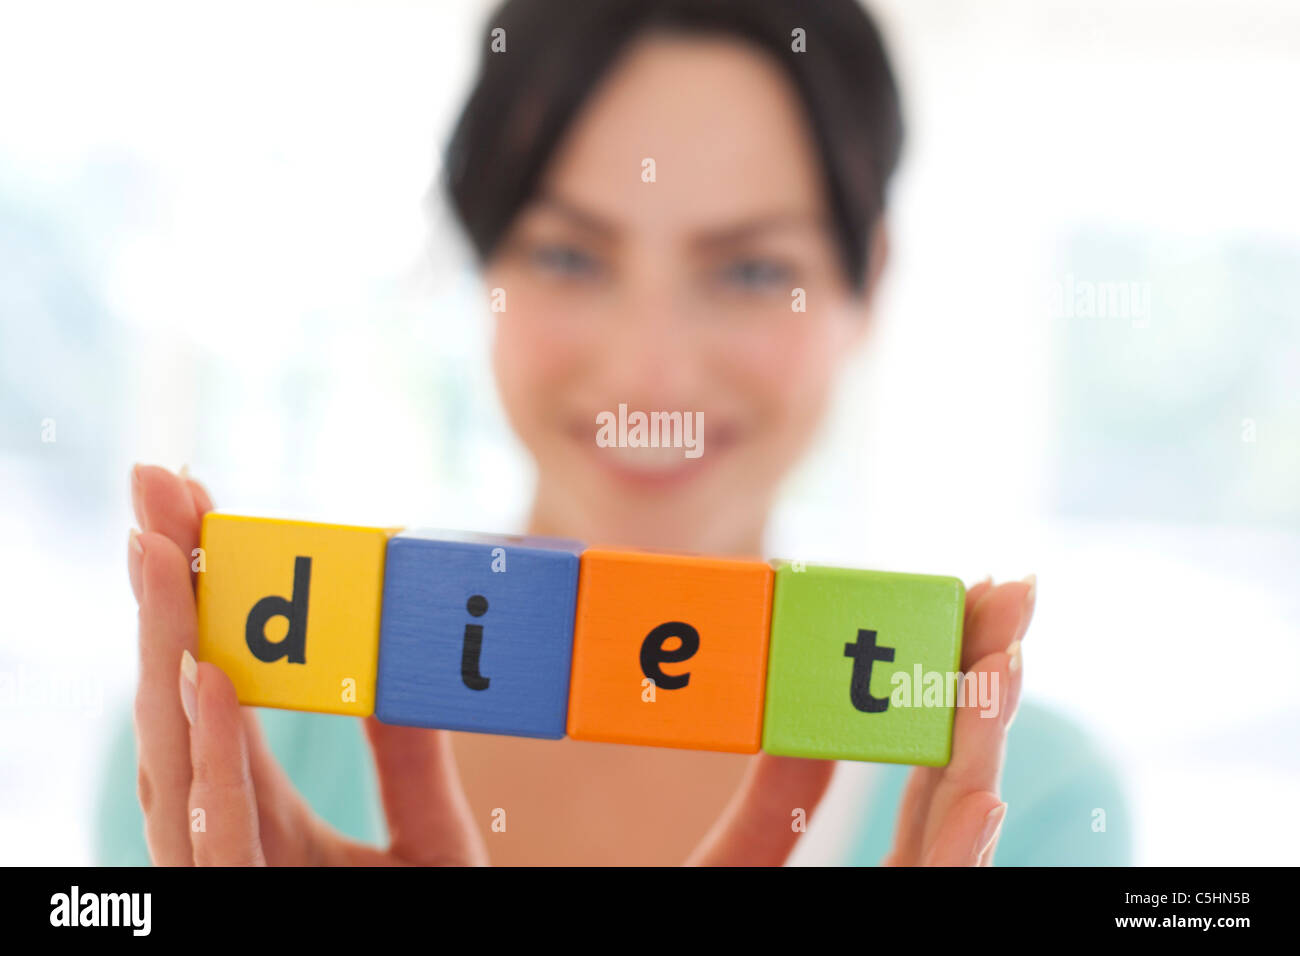 Dieting, conceptual image - Stock Image